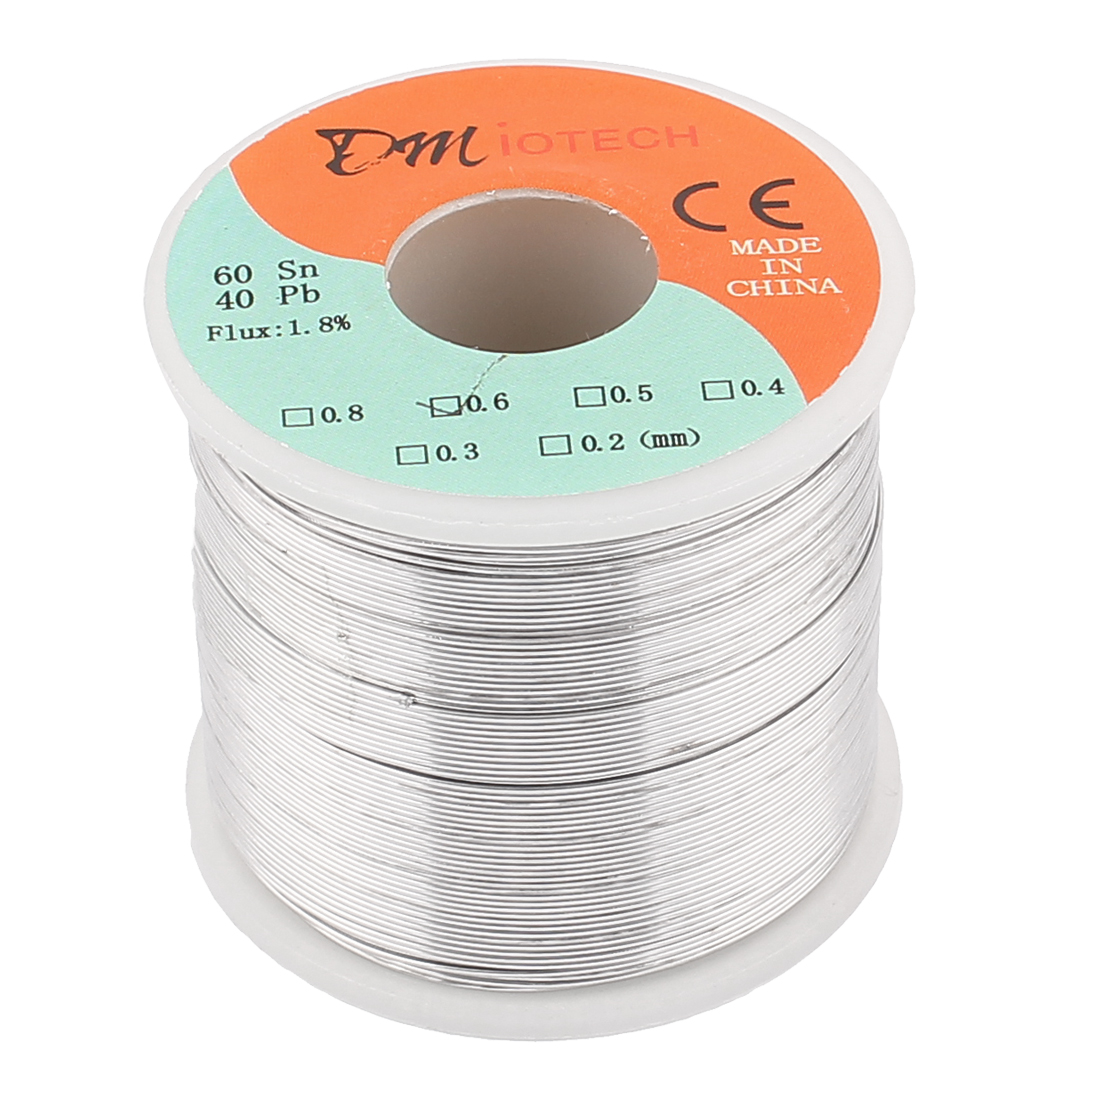 0.6mm 400G 60/40 Rosin Core Tin Lead Roll Soldering Solder Wire